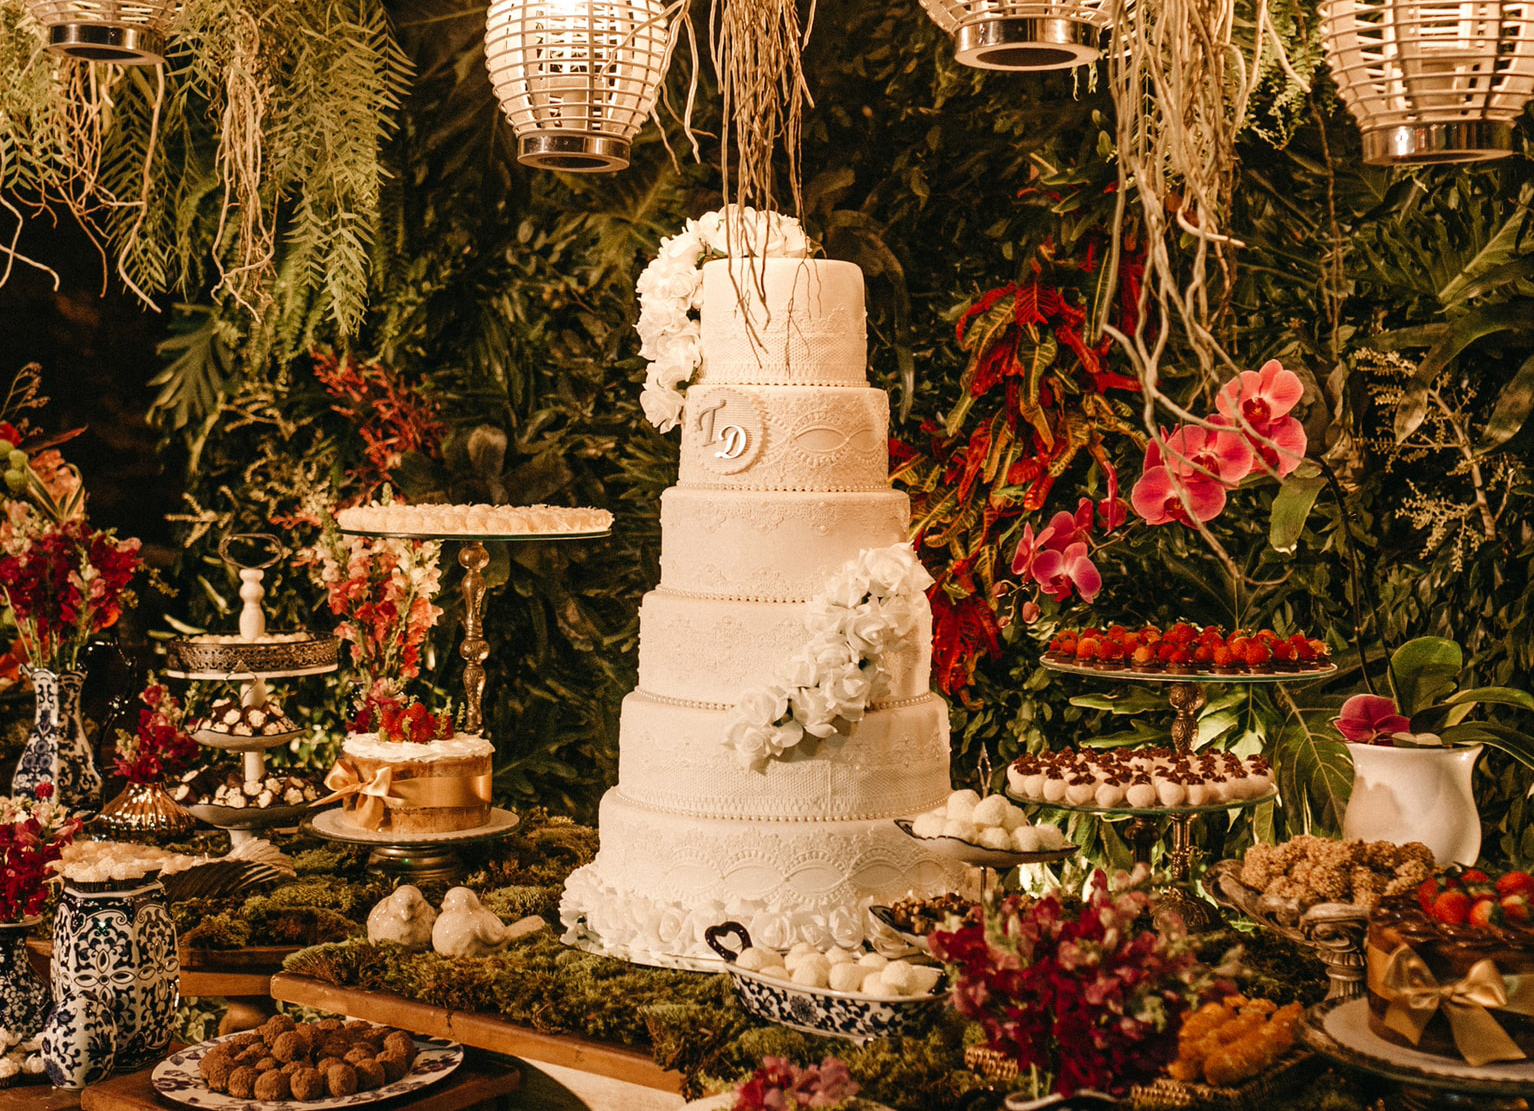 Wedding Cakes - Cake On Table